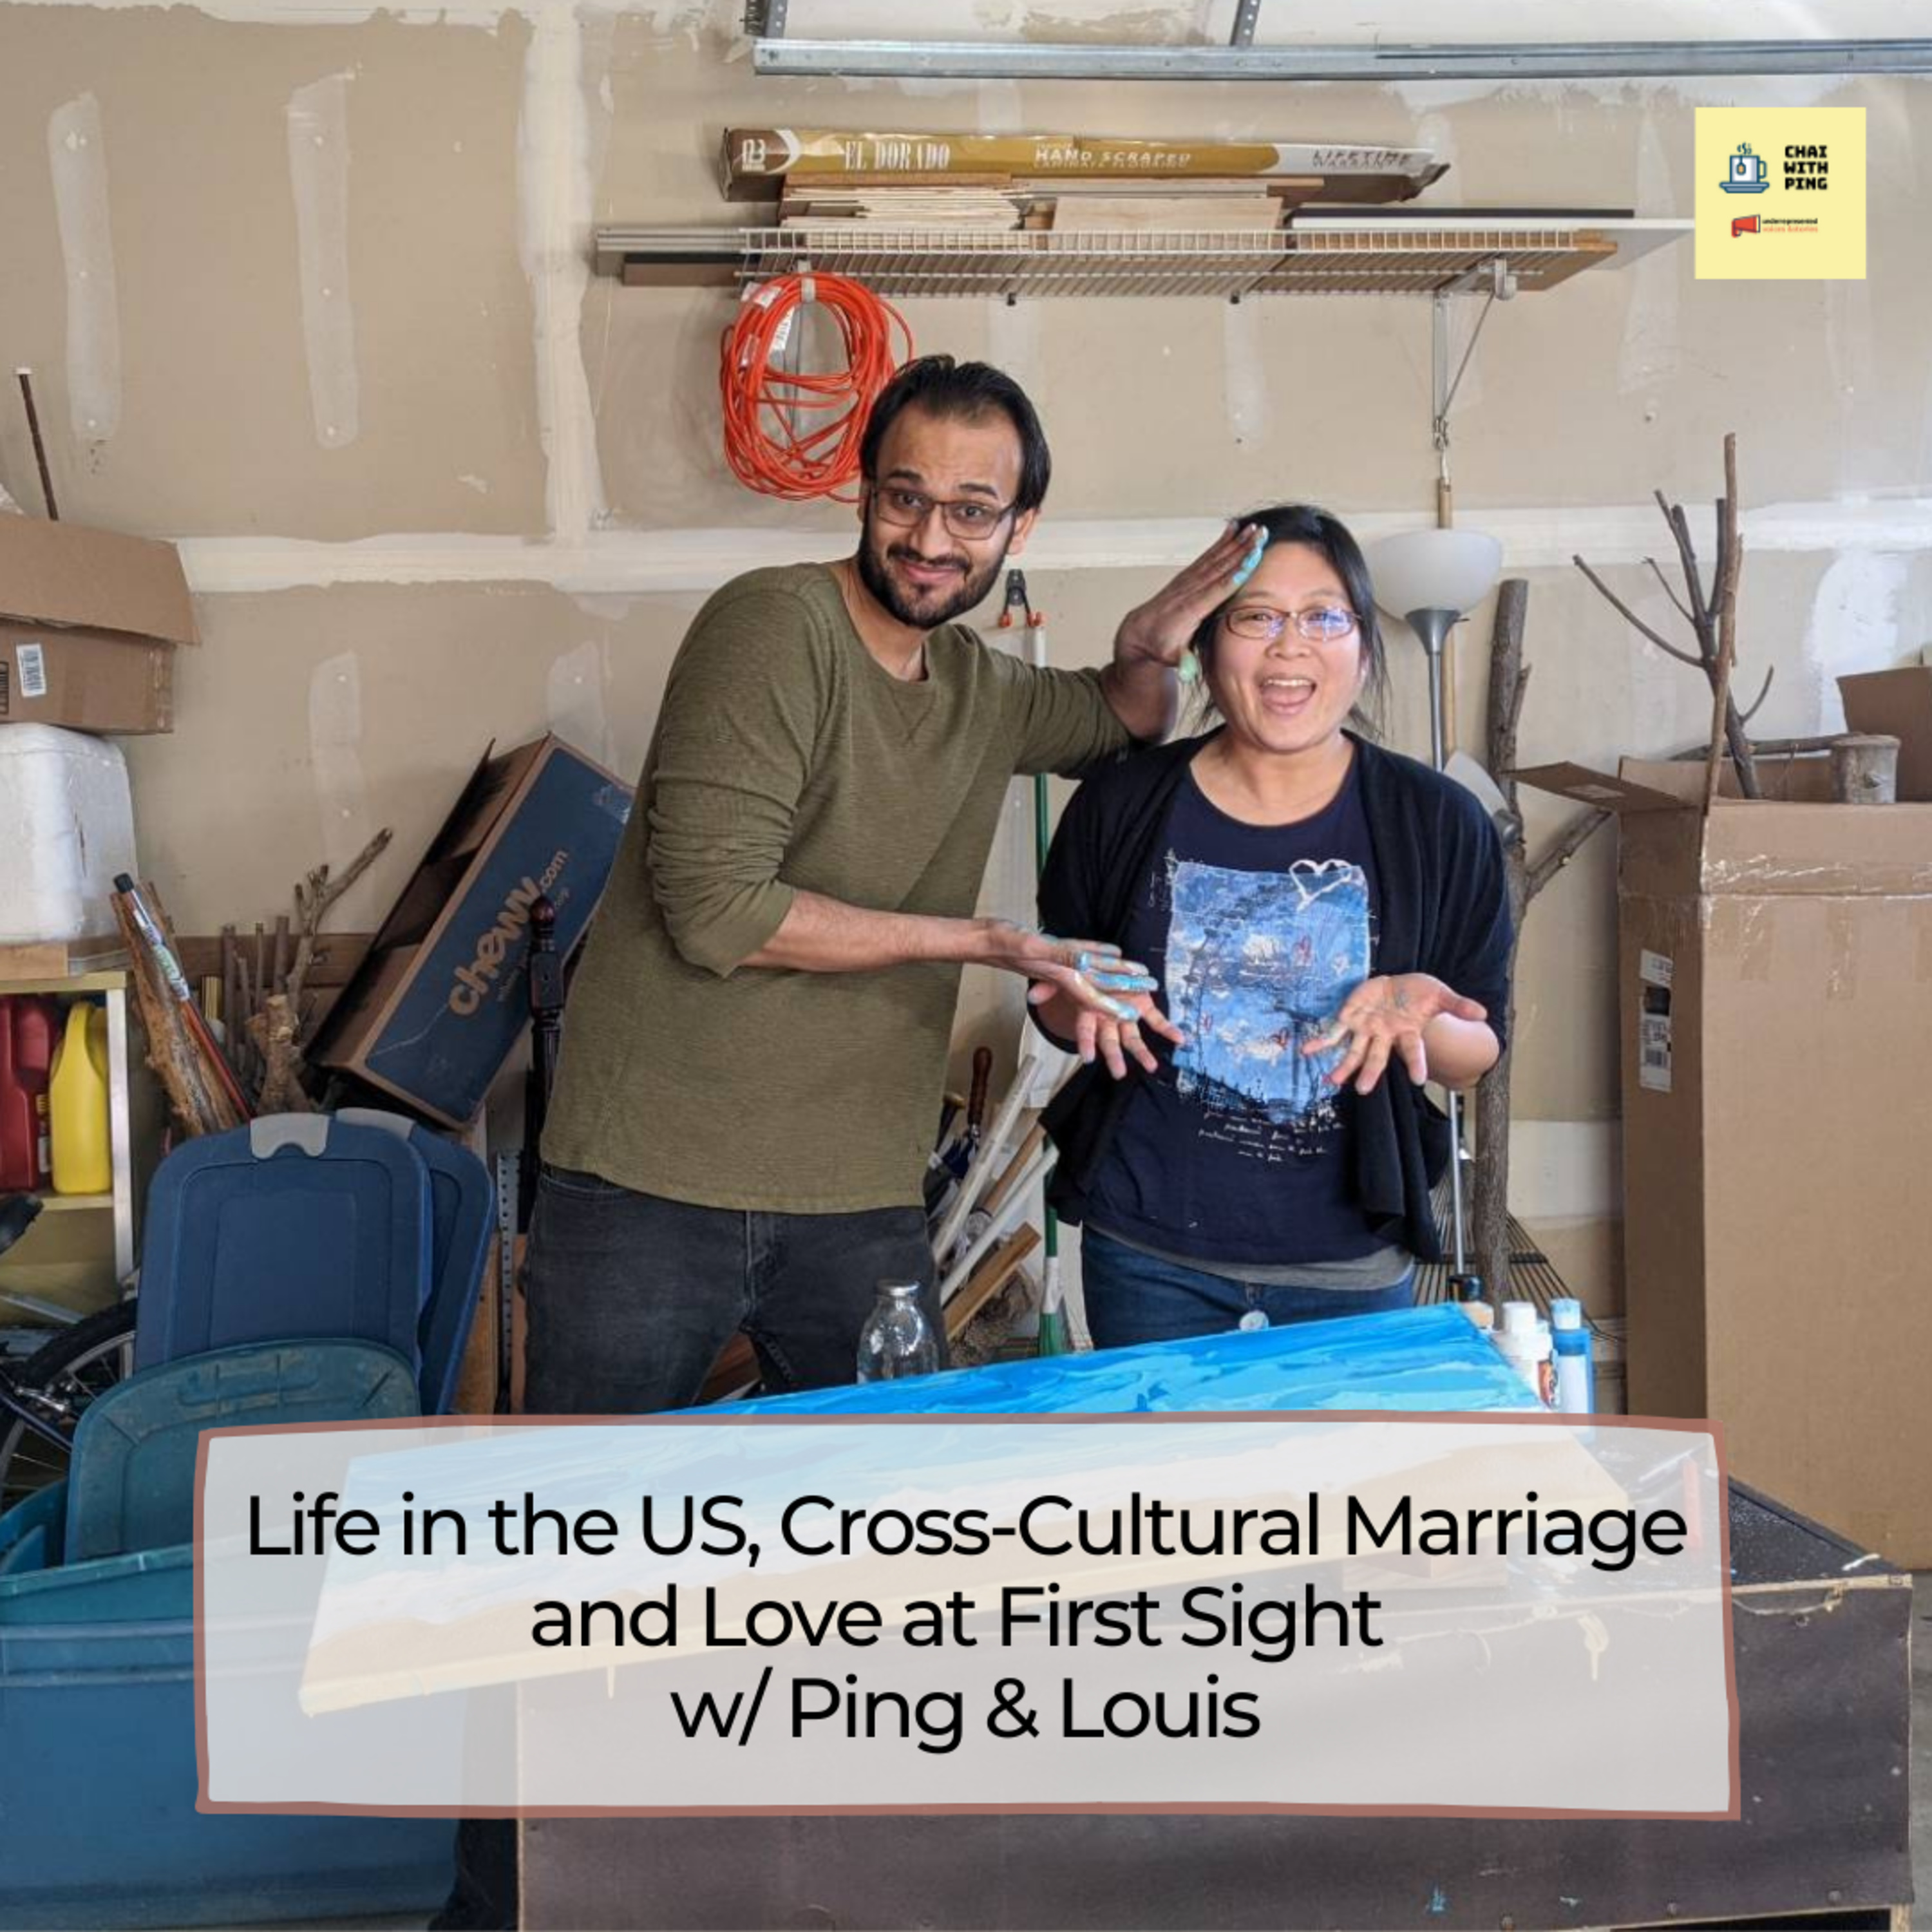 [Chai Time] #50 Life in the US, Cross-Cultural Marriage and Love at First Sight w/ Ping & Louis